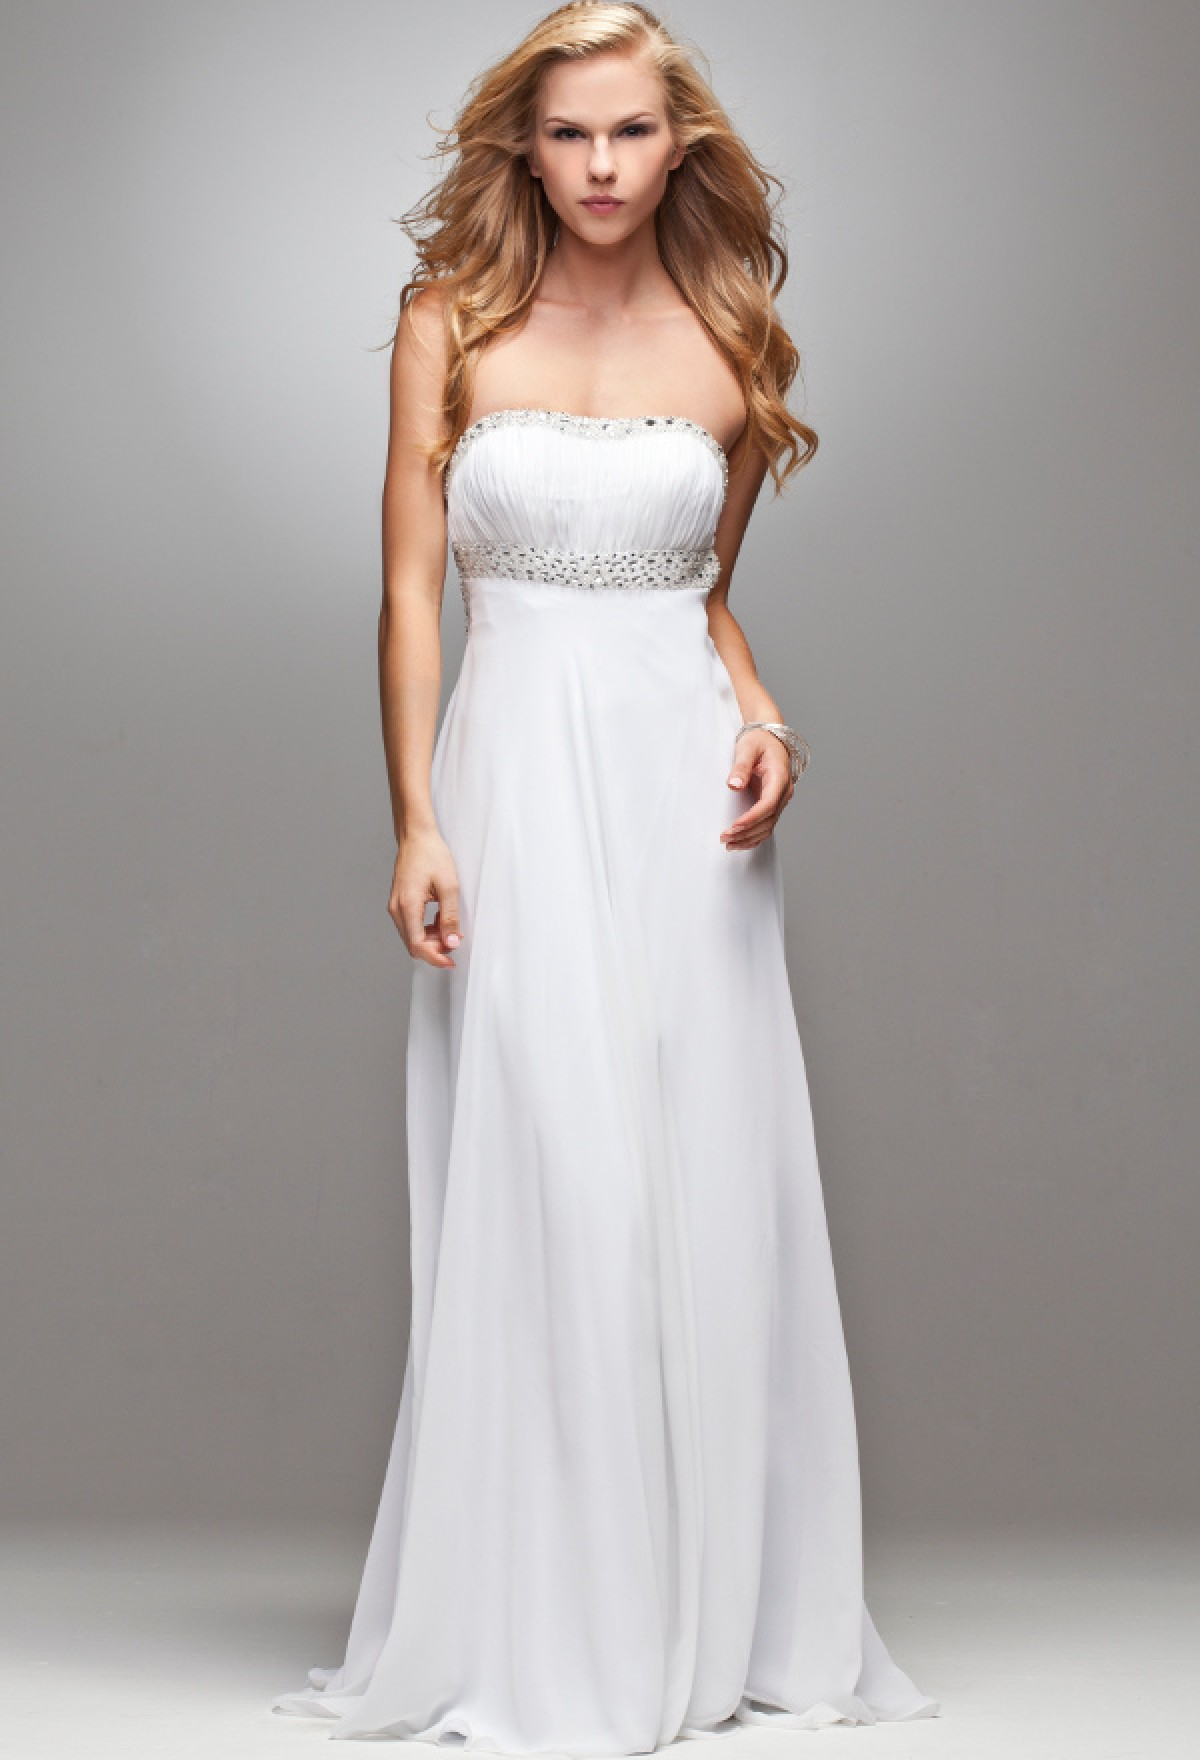 Robe Soiree Mariage Blanche A Bustier Dos Nu Robes Elina